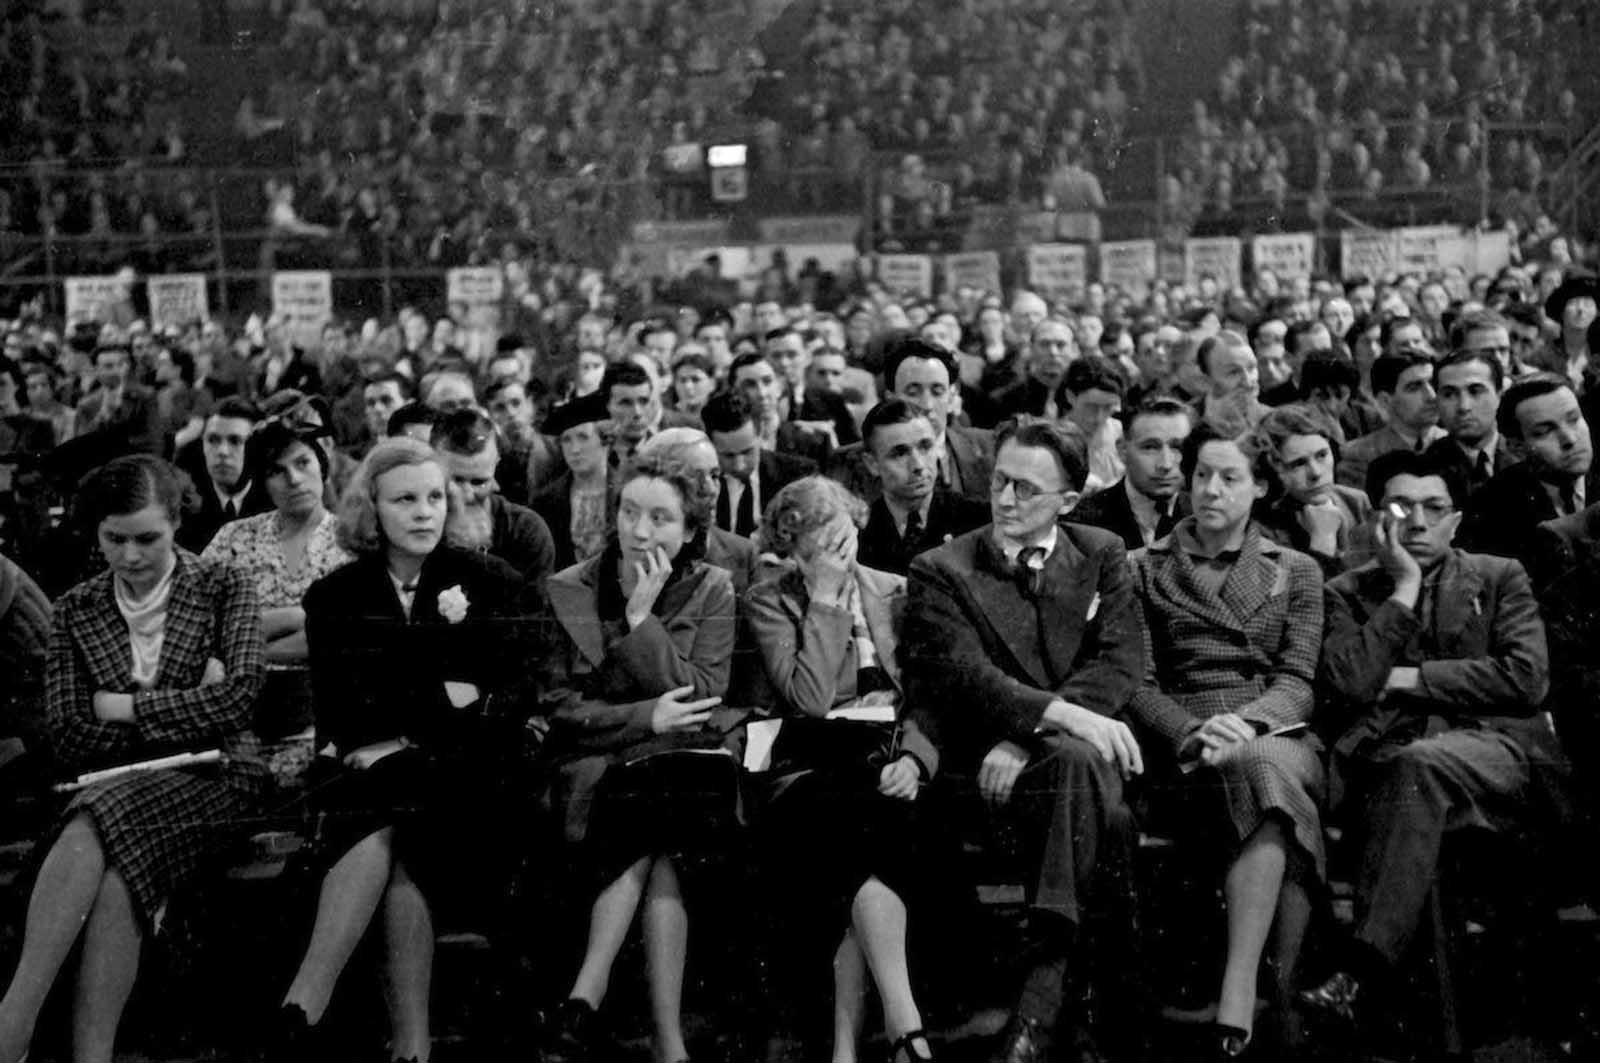 Members of the crowd at a meeting of the British Communist Party at the Empress stadium in Earls Court, London. 1939.